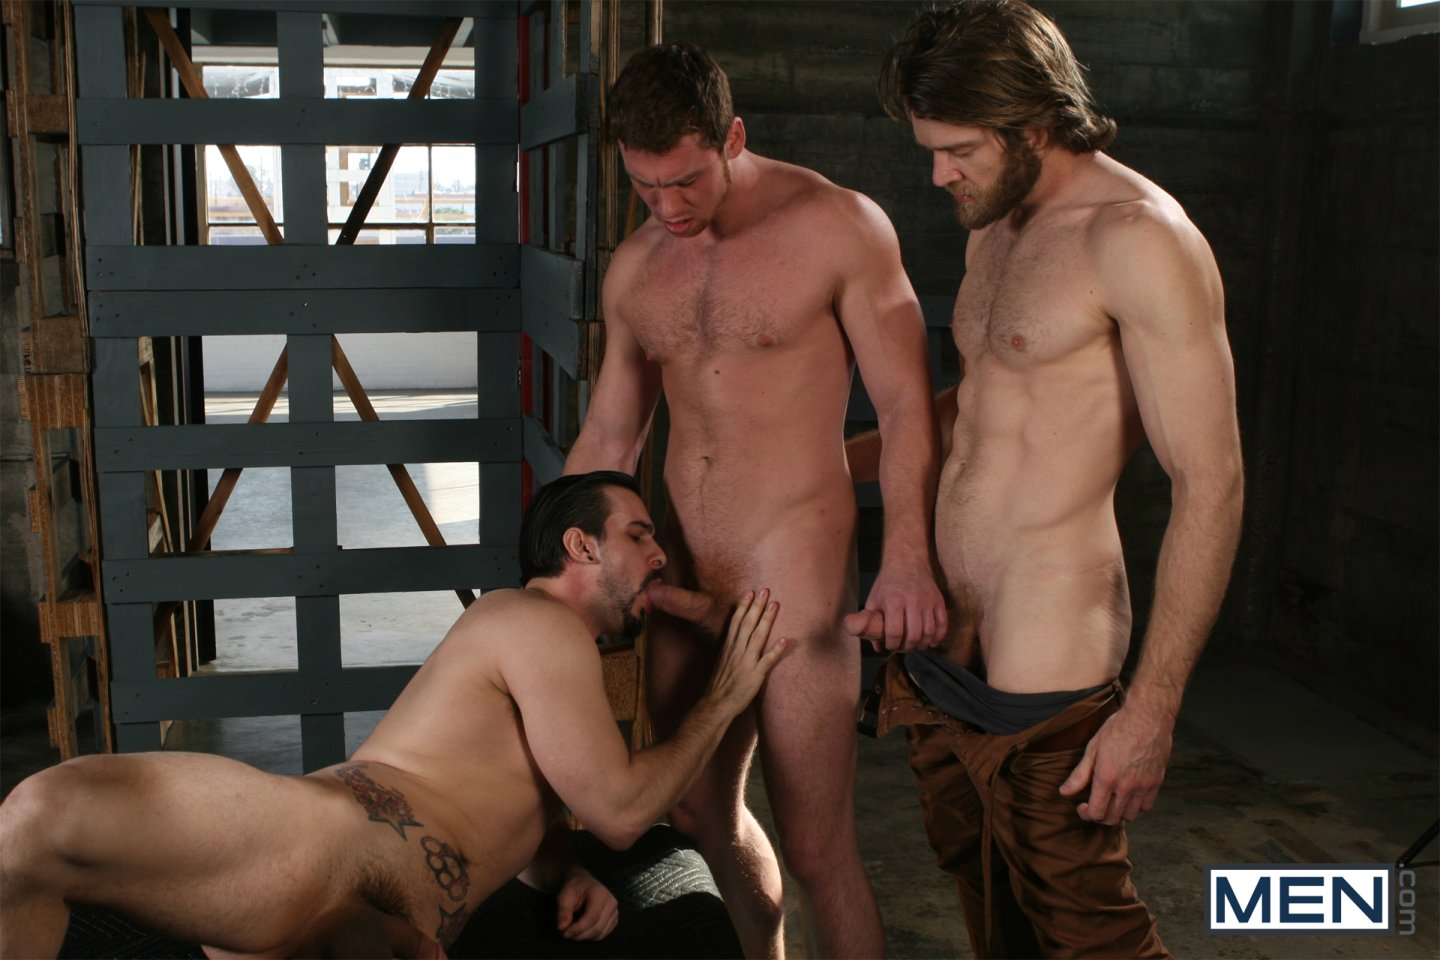 Colby keller is a different kind of sex touri 3